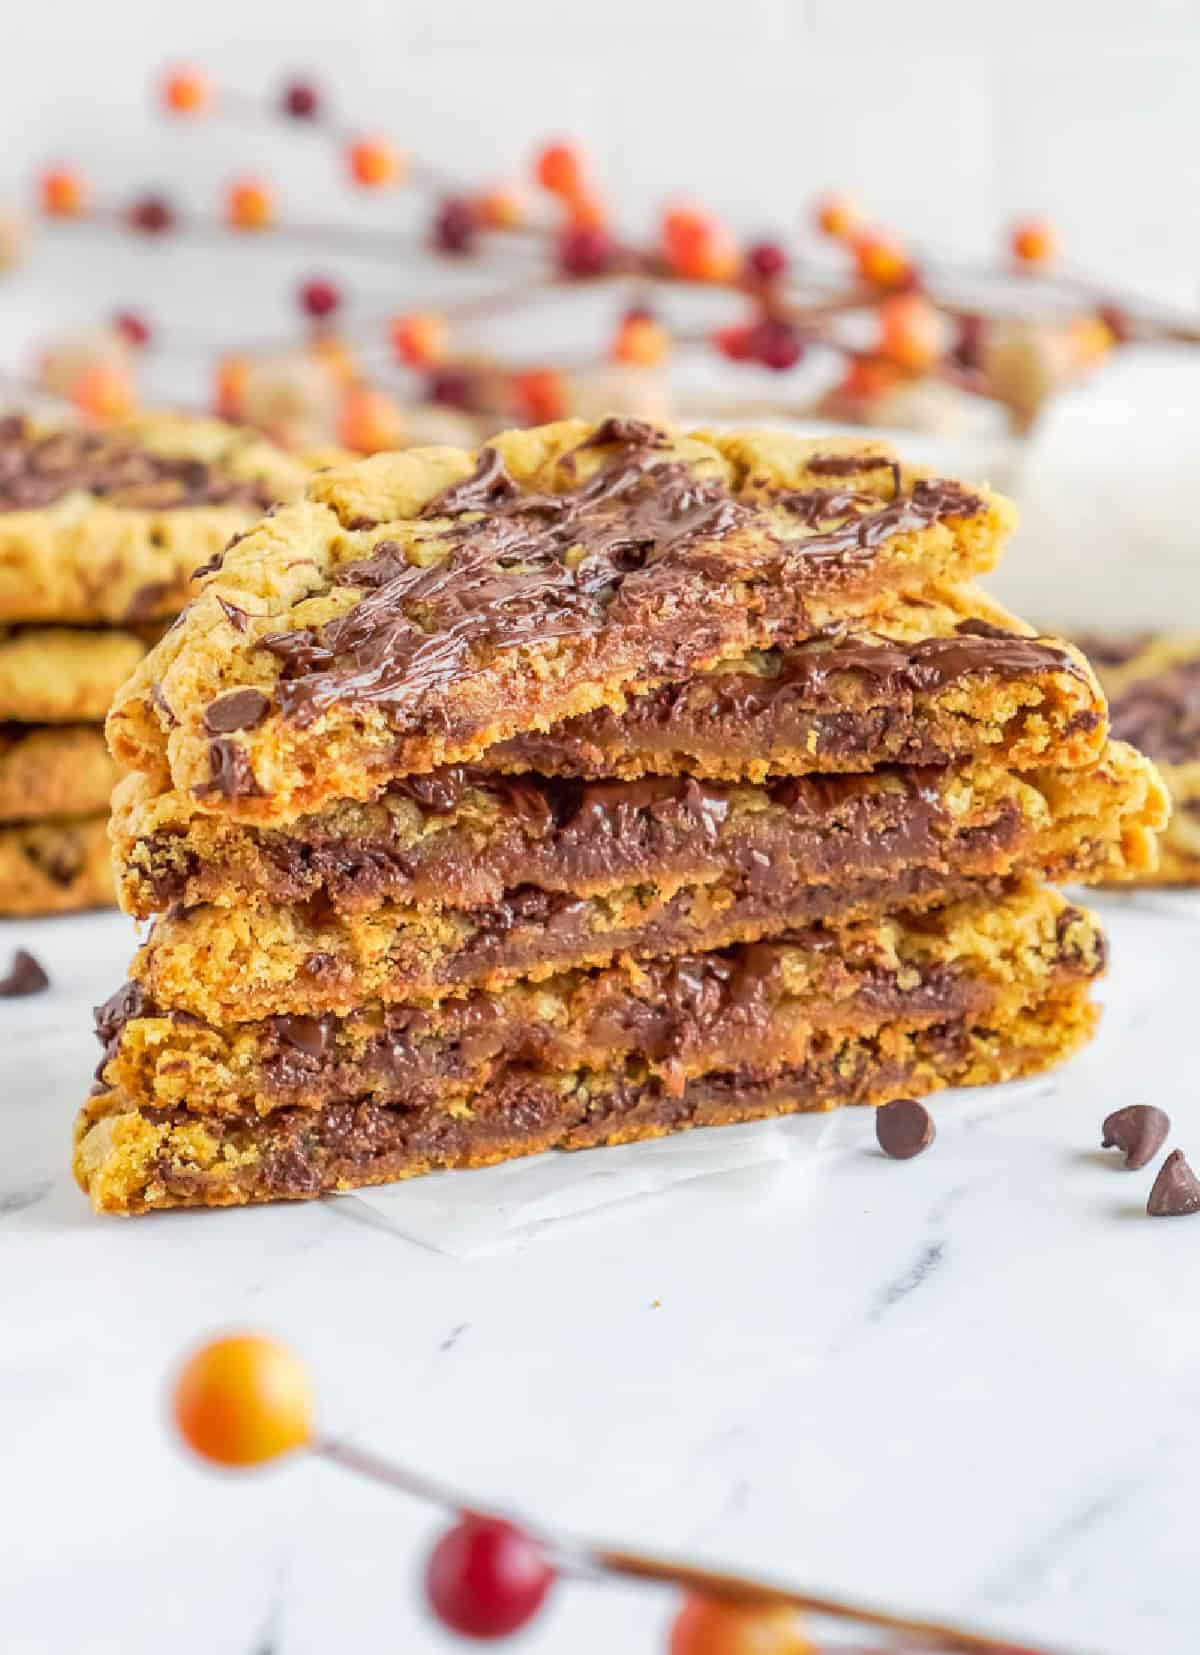 A stack of pumpkin chocolate chip cookies cut in half with melty chocolate.